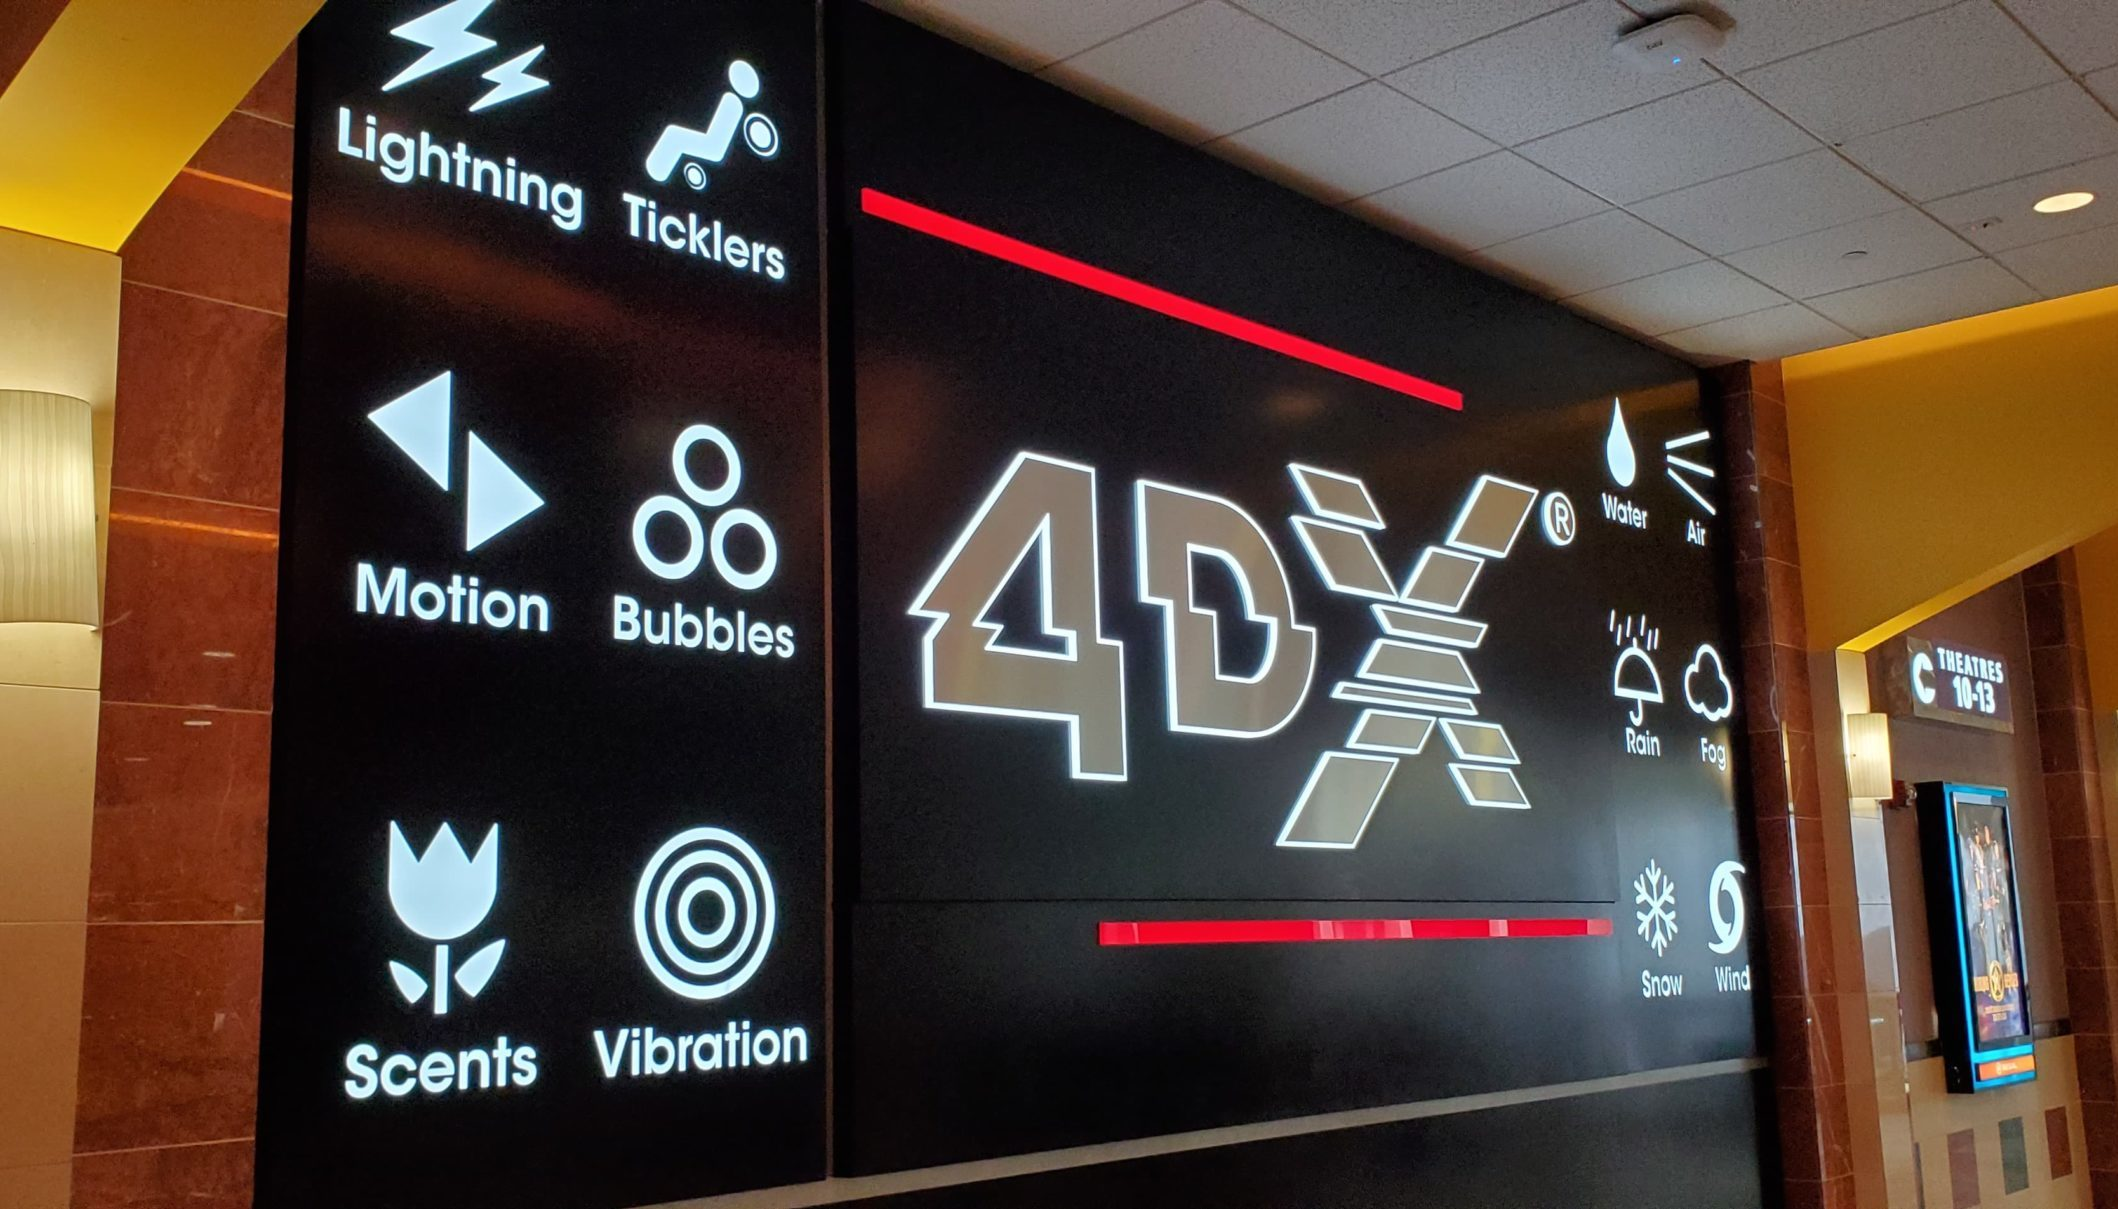 Regal CInema 4dx Sign. The Bad Boys Mike Lowrey and Marcus Burnett are back together for one last ride in the highly anticipated Bad Boys for Life. Read my full Bad Boys 4 Life 4DX Expereince and Movie review on my blog now!